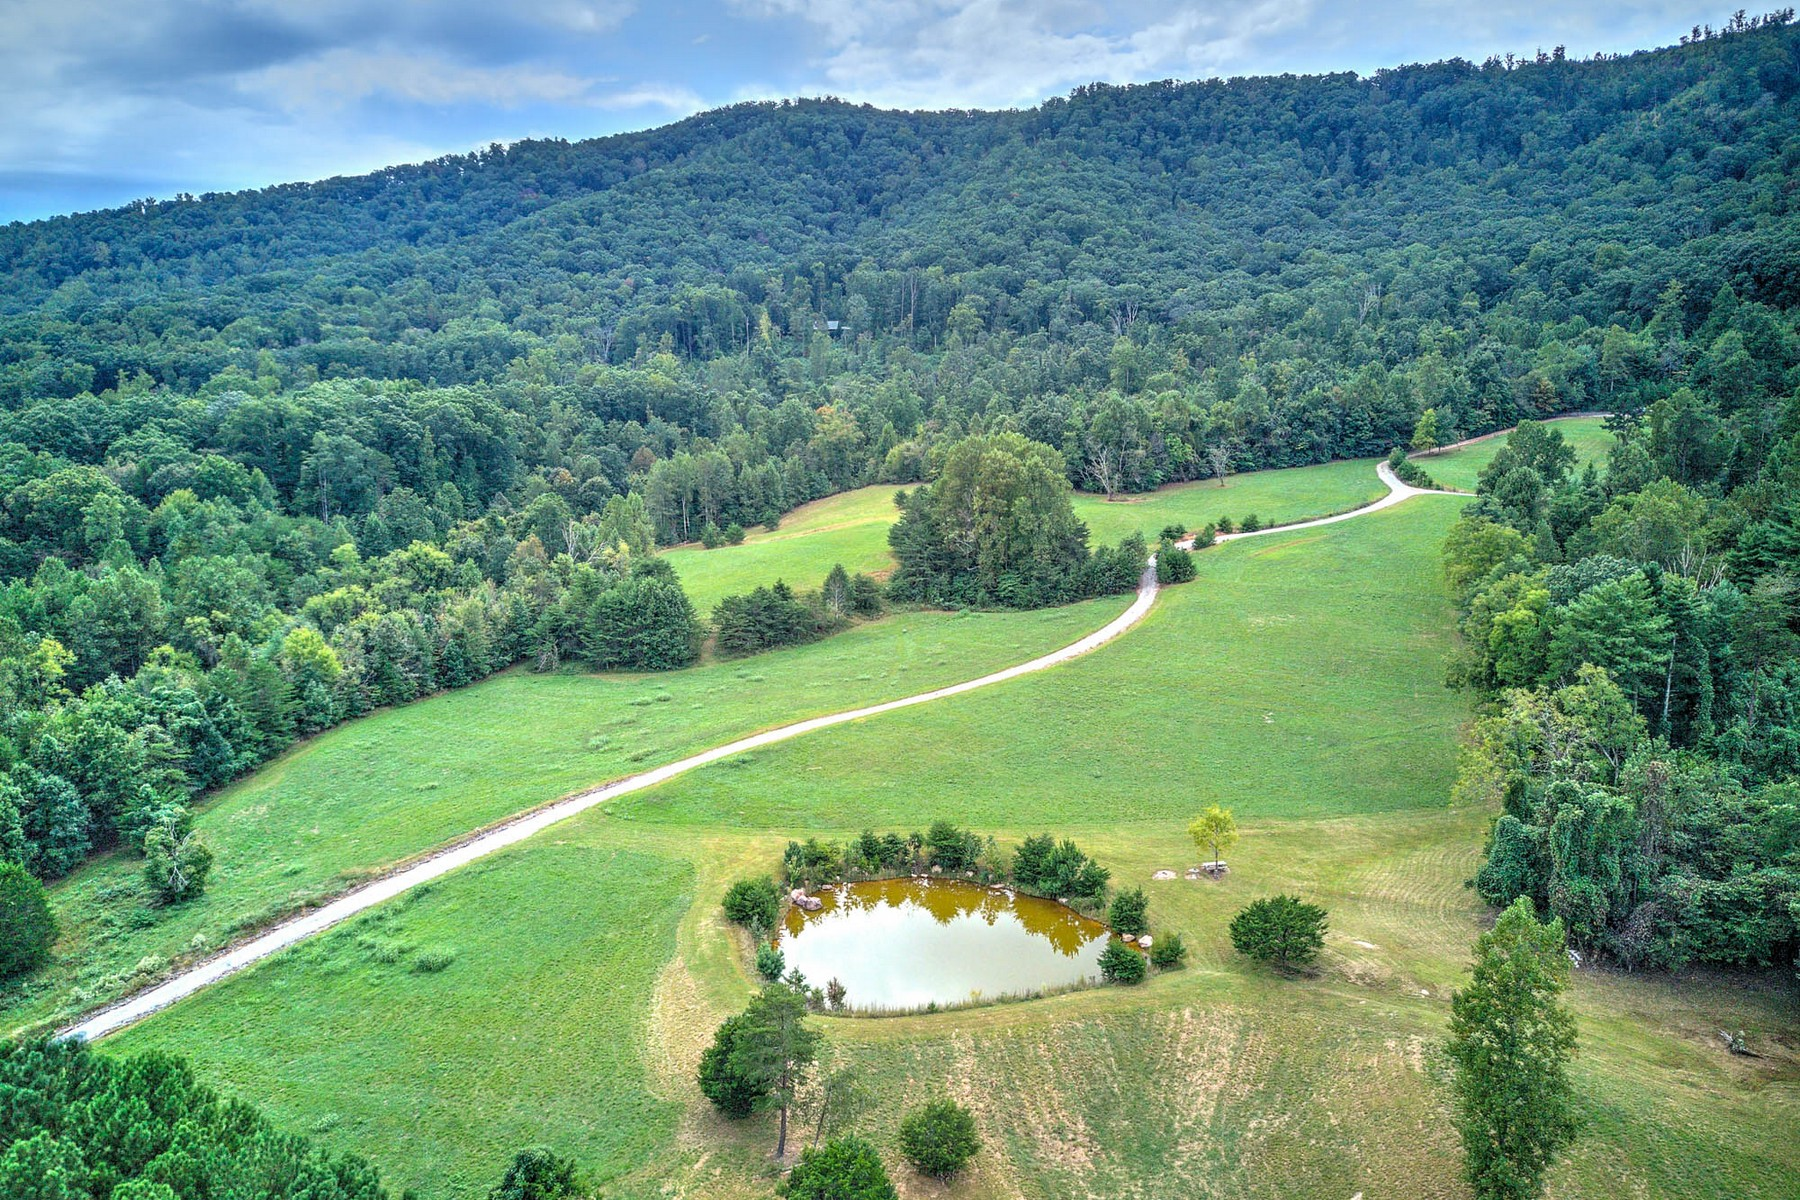 Terreno por un Venta en Acreage On Starr Mountain 2395 and 2355 Mecca Pike Englewood, Tennessee 37329 Estados Unidos